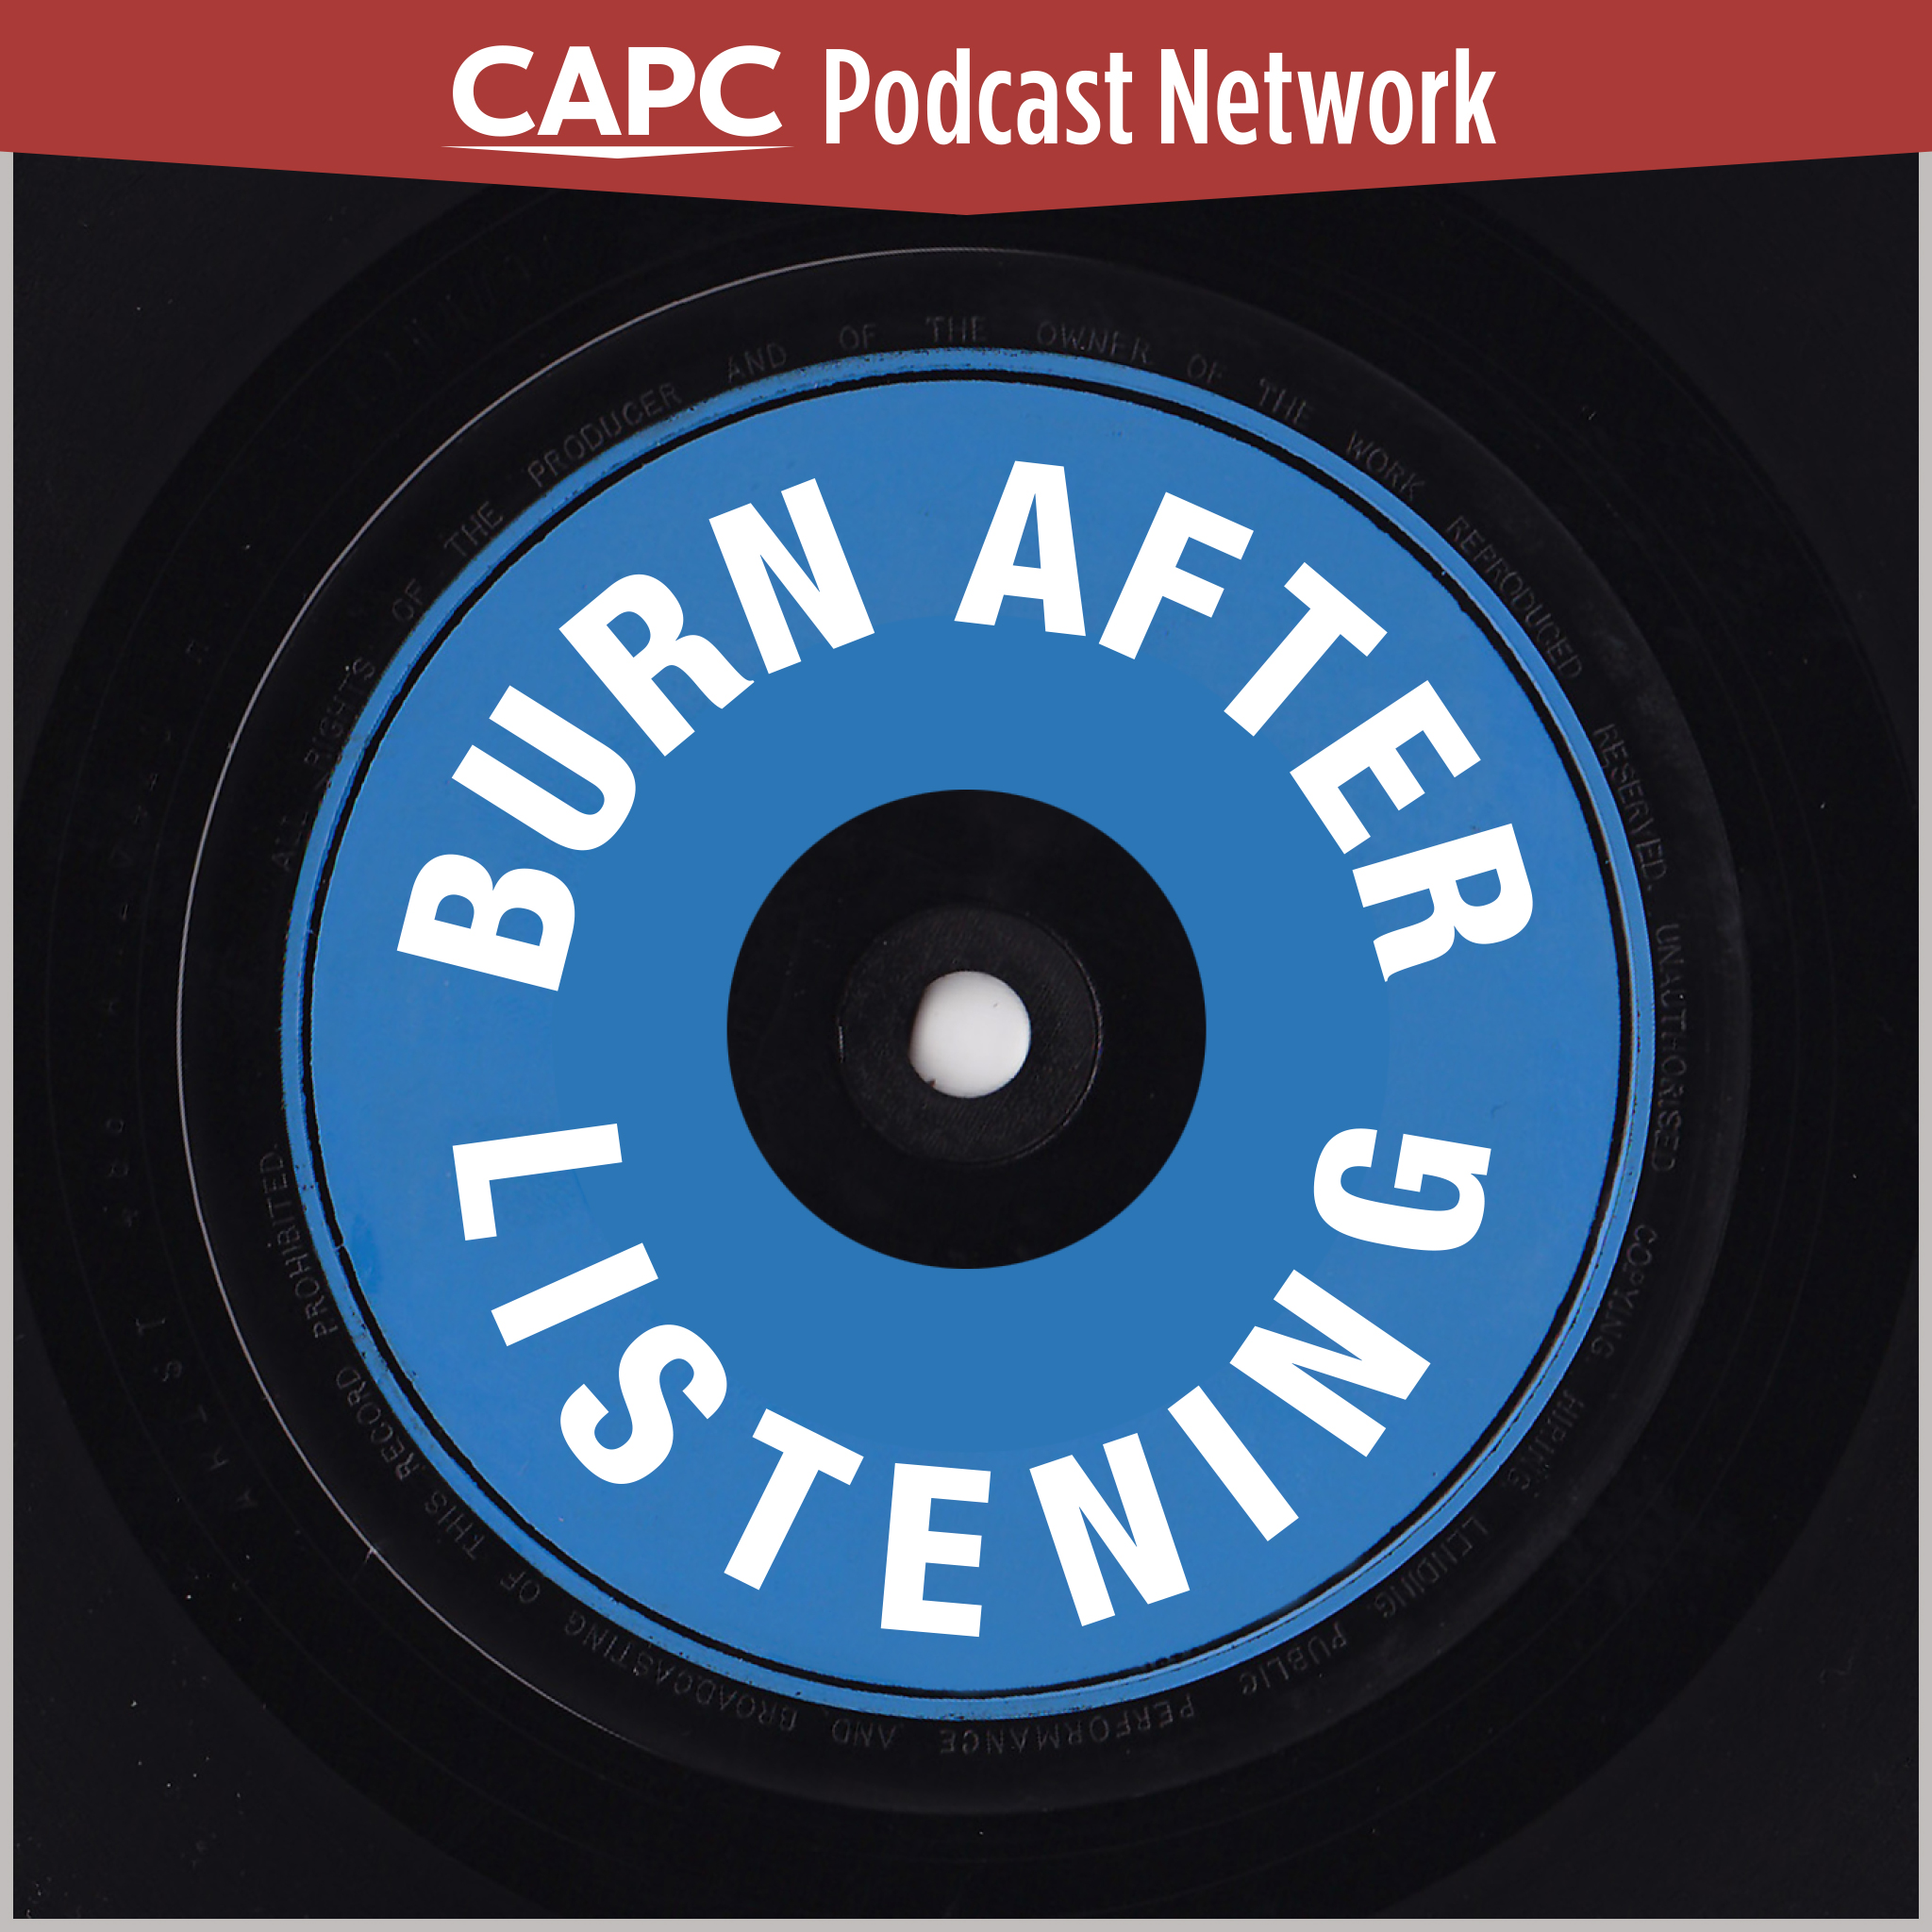 Burn After Listening with Nick Rynerson